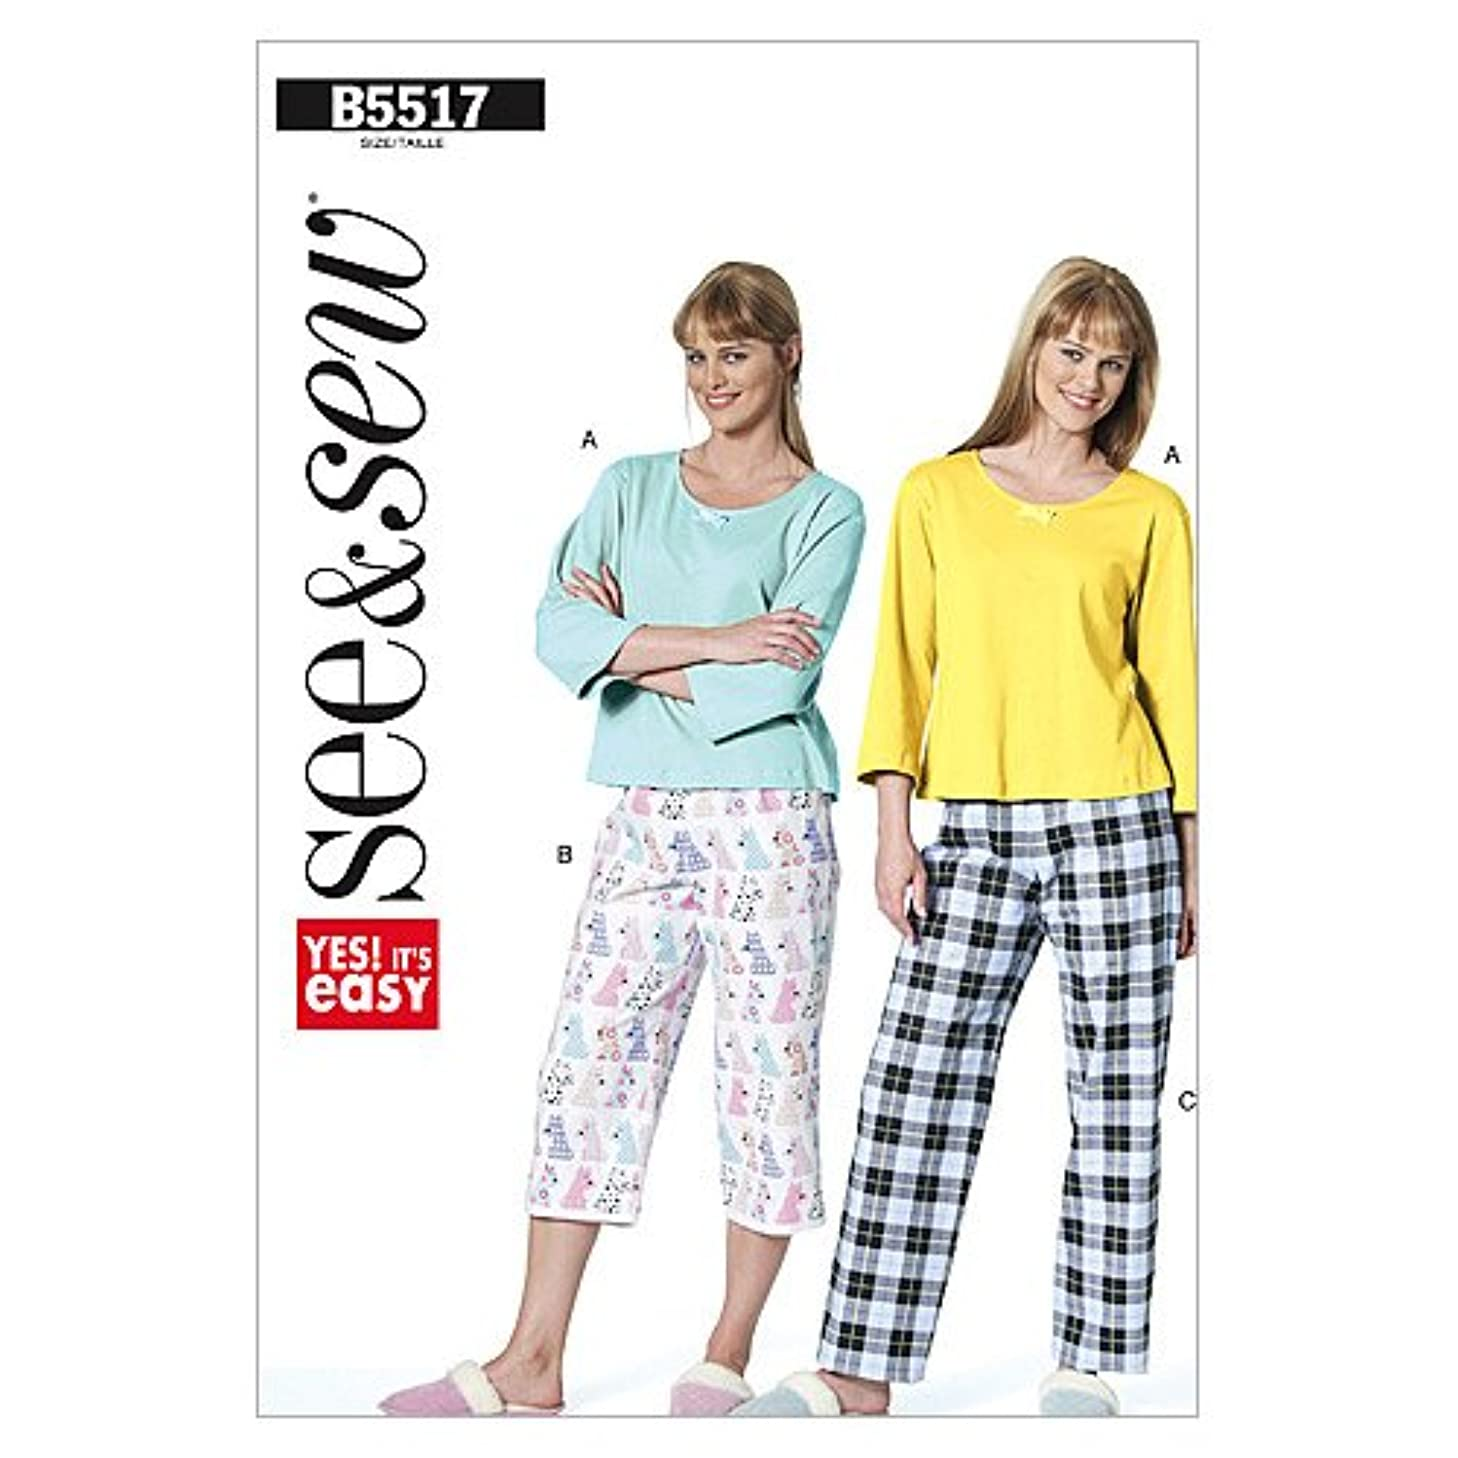 BUTTERICK PATTERNS B5517 Misses'/Misses' Petite Top and Pants, Size A (XSM-SML-MED)